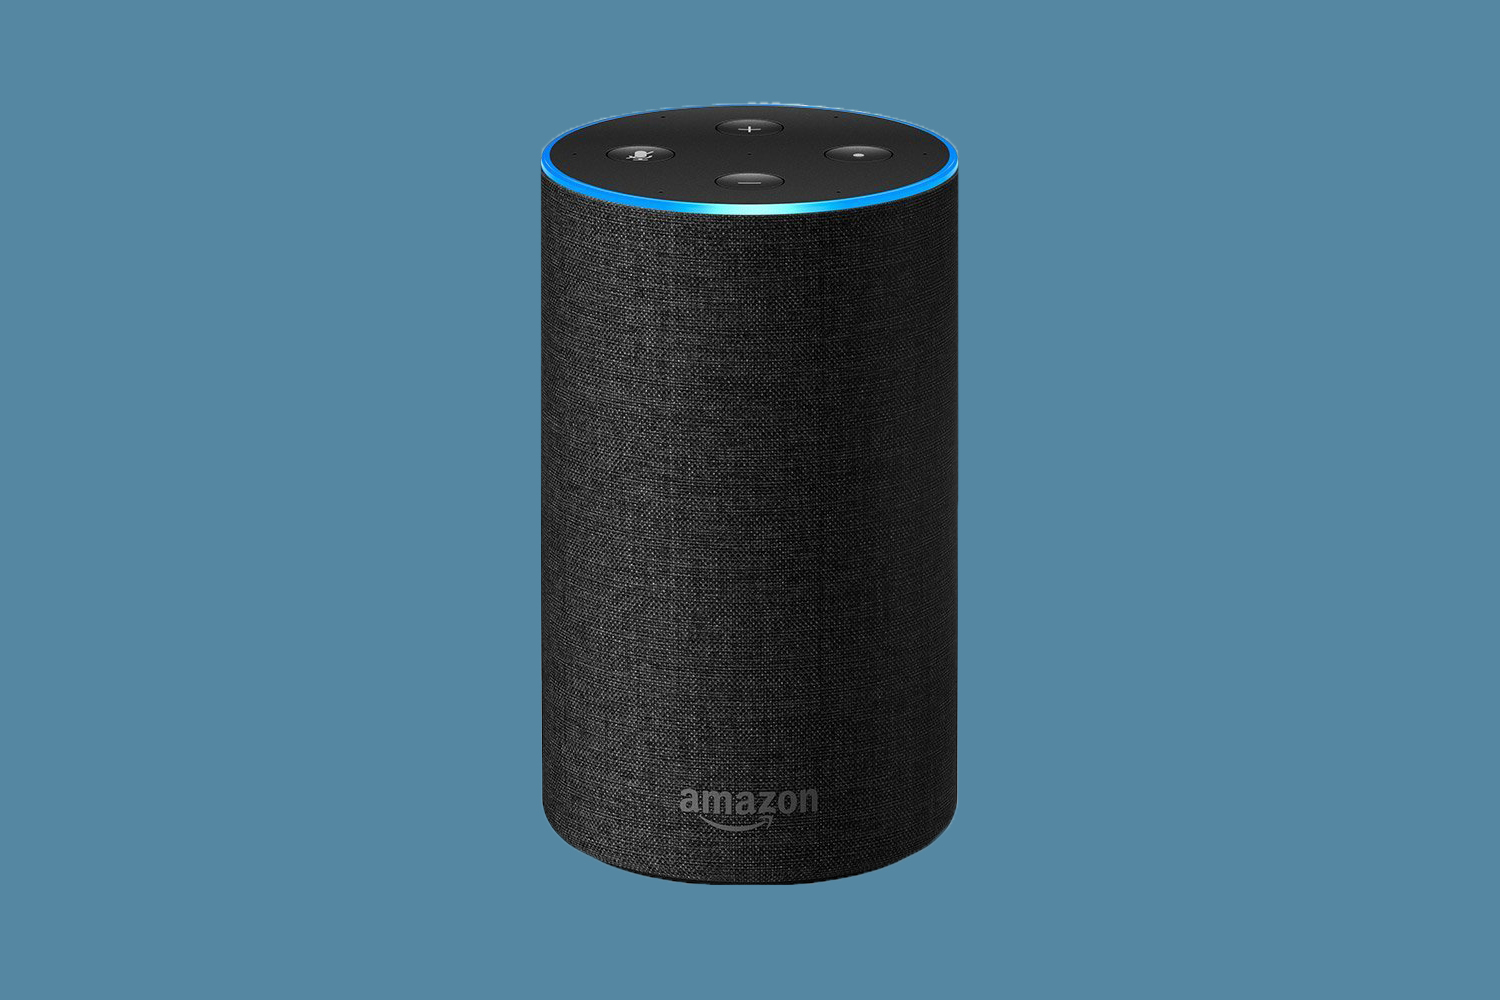 7 Essential Tips for Your New Amazon Echo (Or Other Alexa Device)